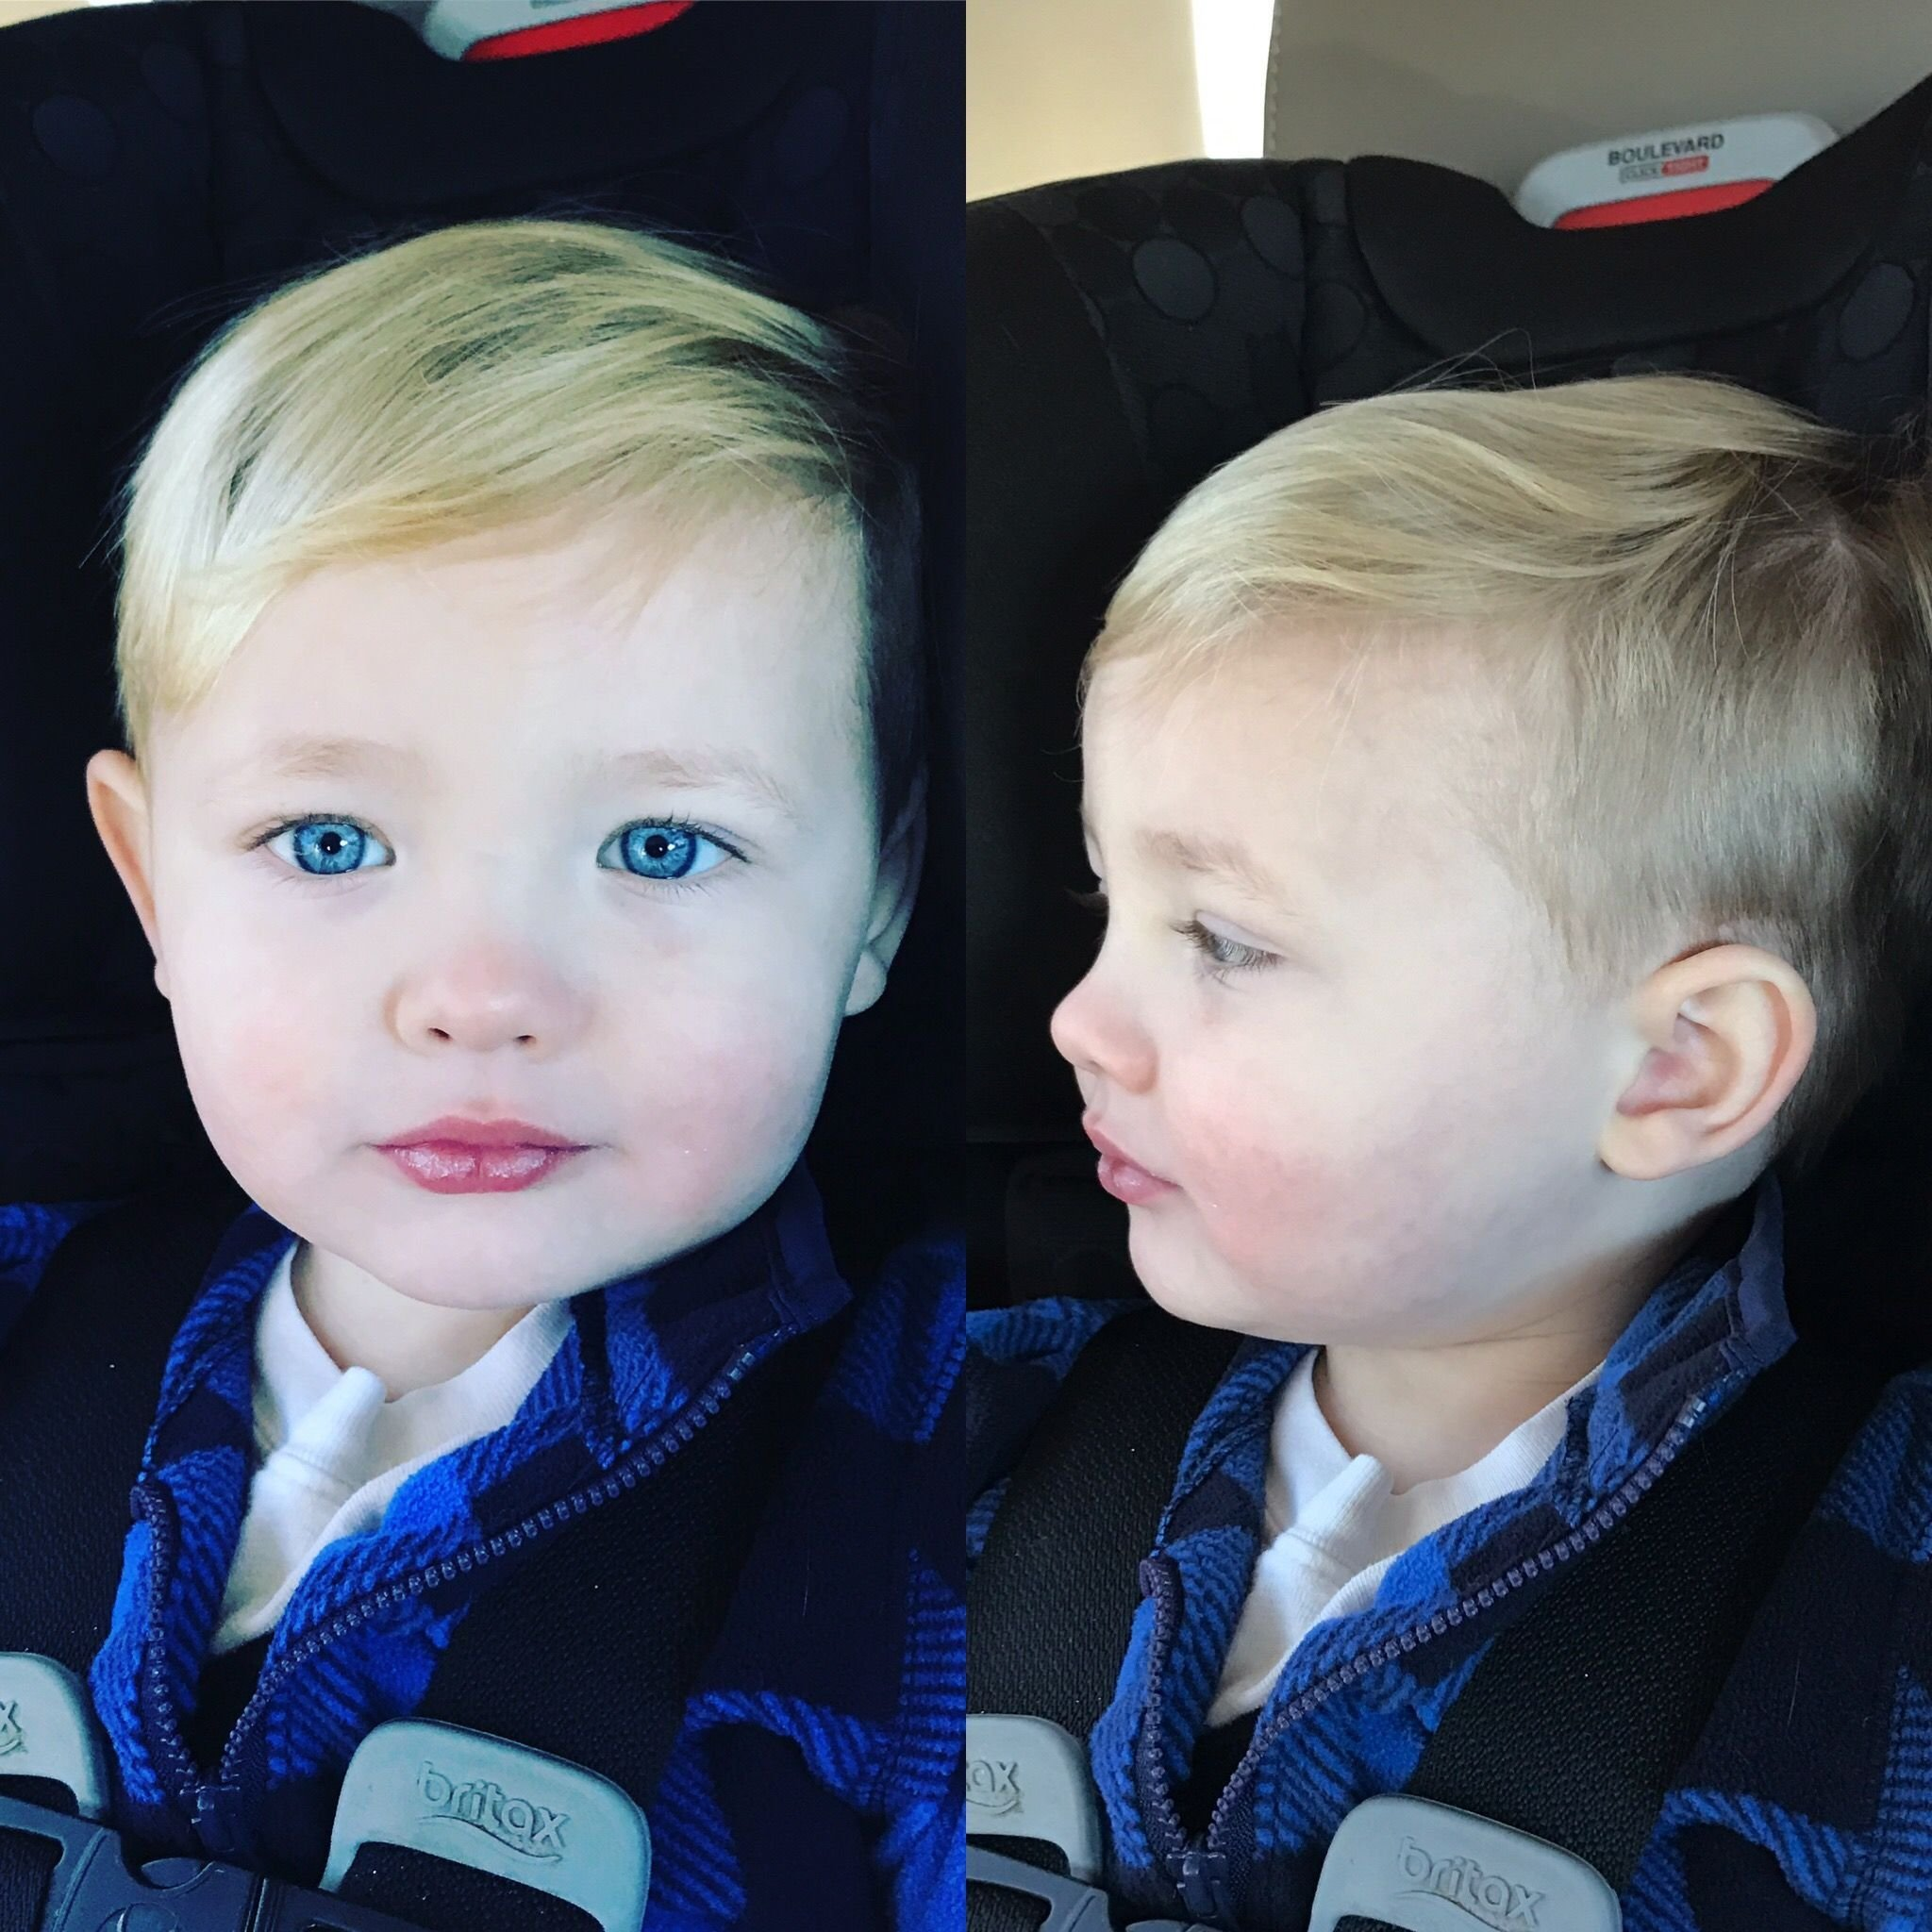 New Baby Hair Blonde Thin Cut Haircut Hairstyle Toddler 2017 Ideas With Pictures